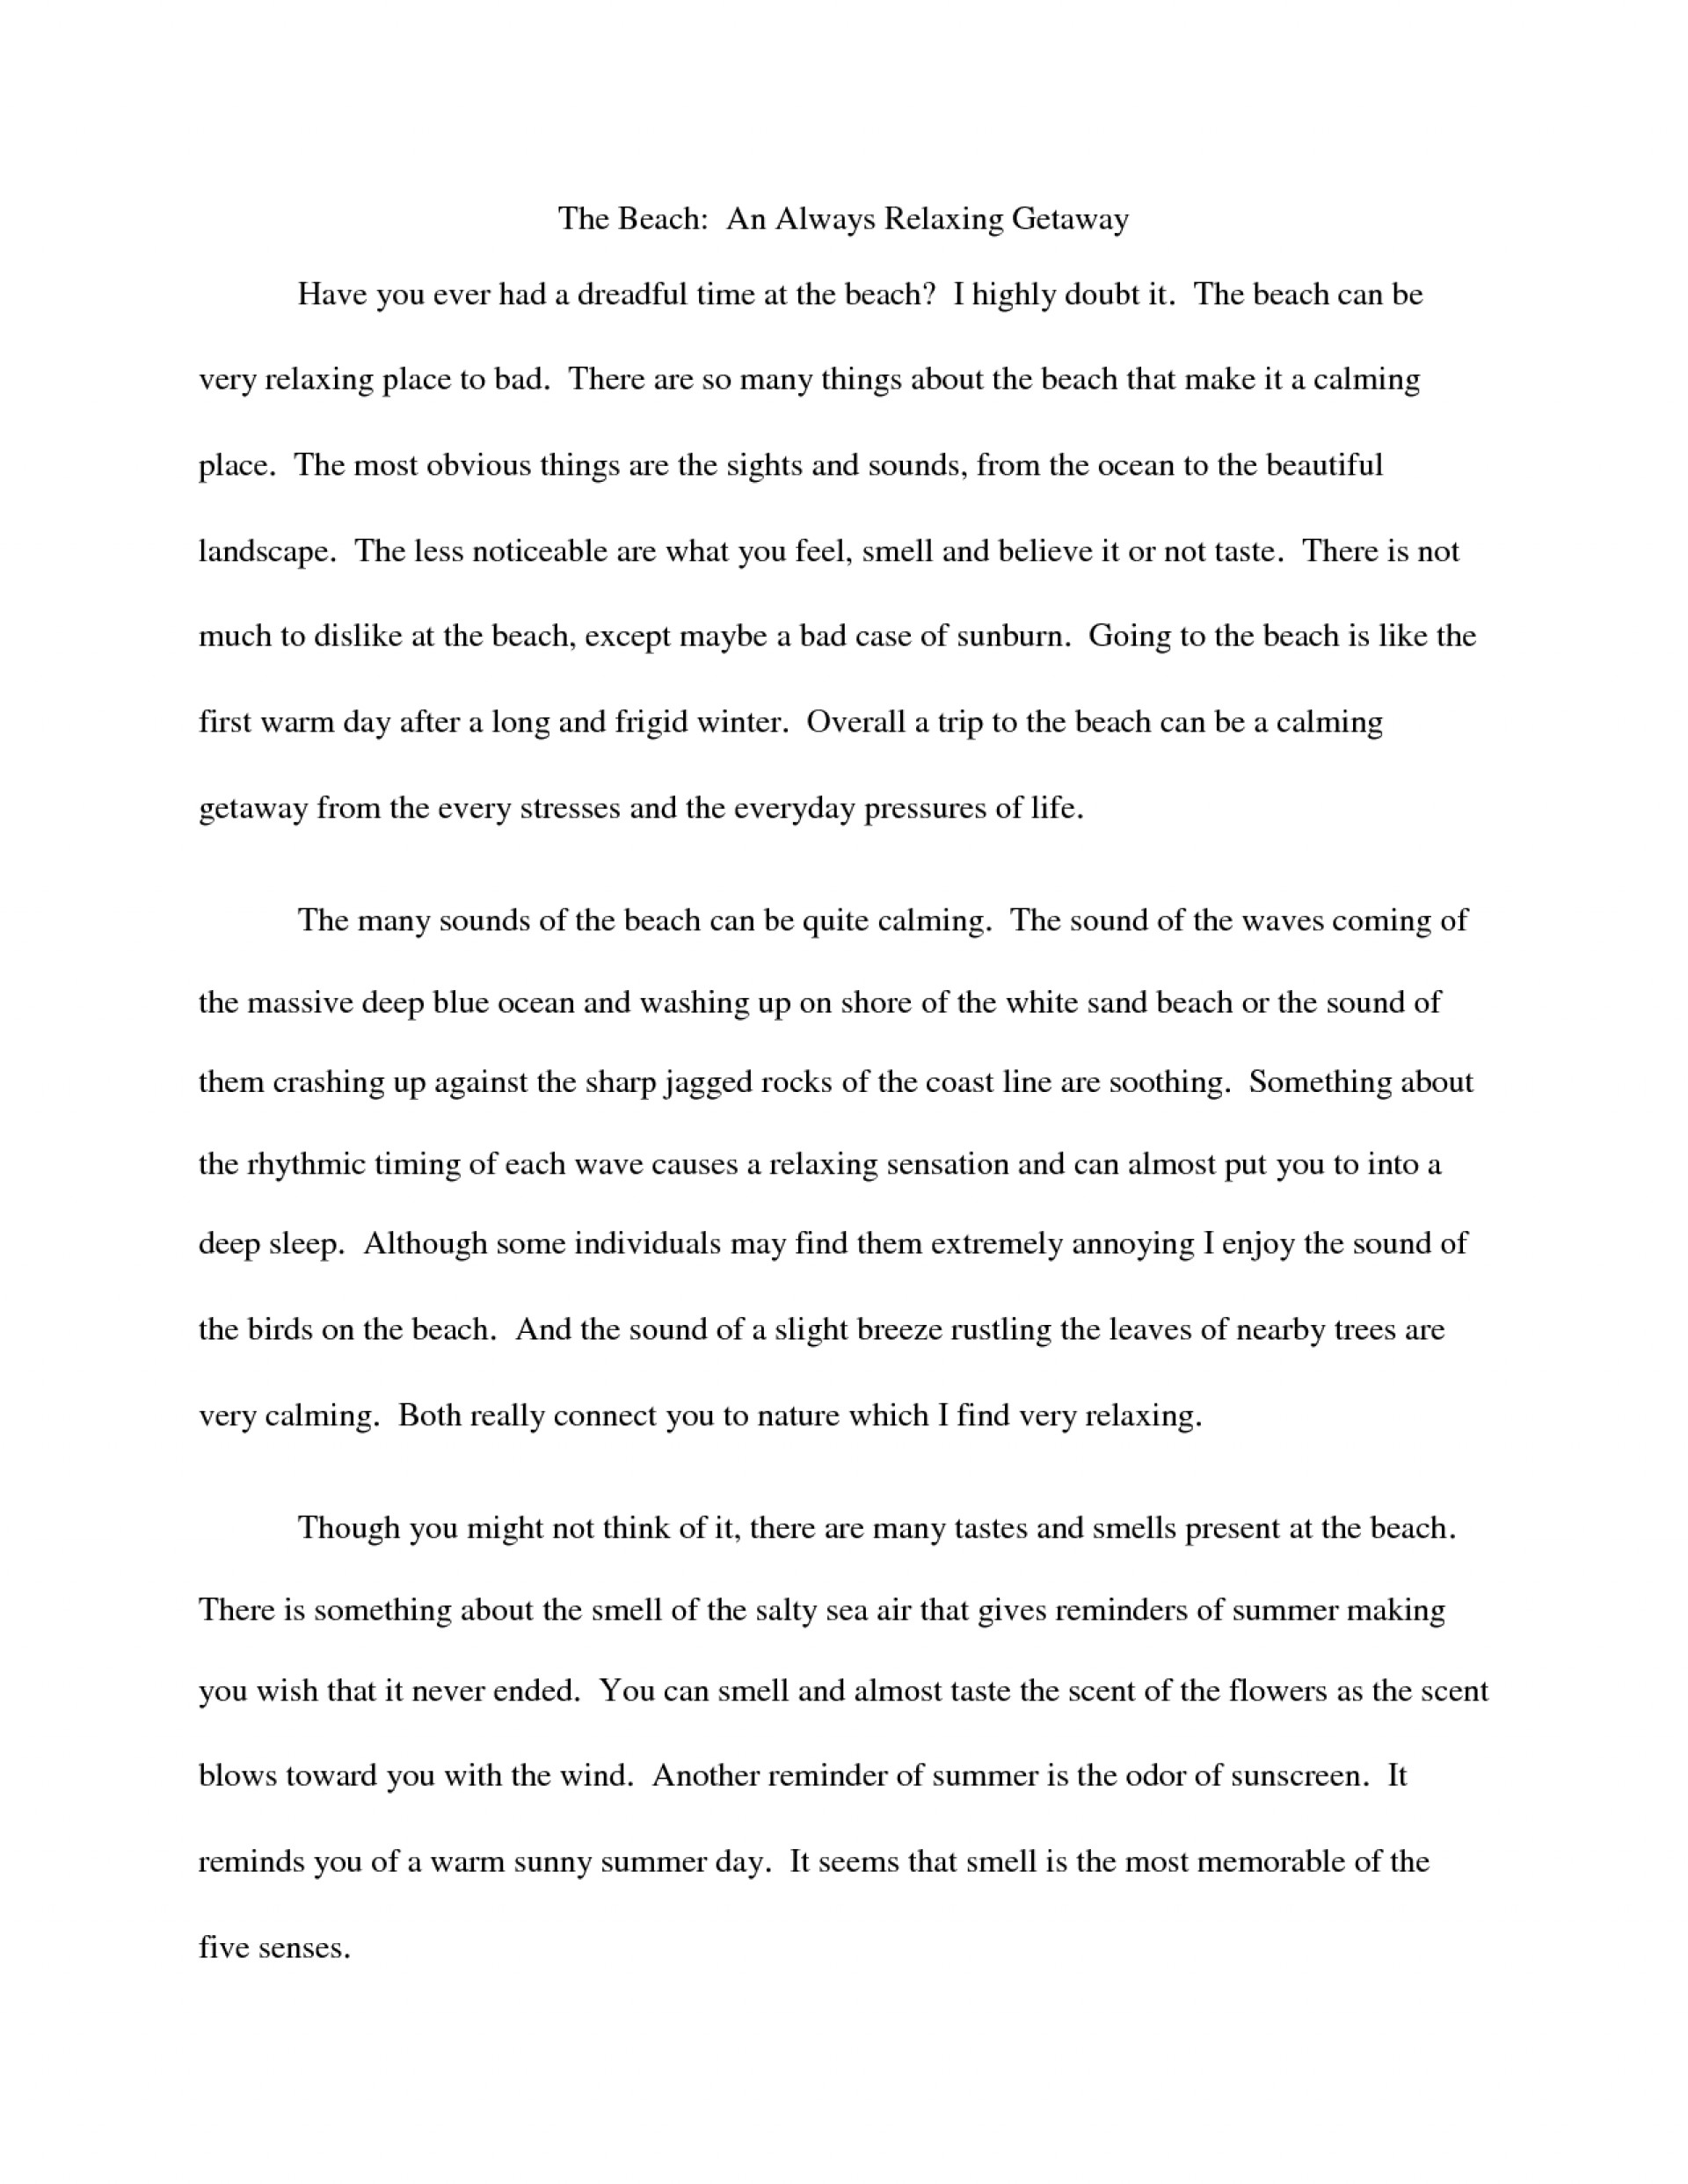 006 Essay Example Descriptive Beach Essays College That Stand Out Odvqltnc Short On The Sunset Paper Barefoot About Walk Vacation Narrative At Night Free Unbelievable Examples For Middle School Students Sample A Place Pdf 1920